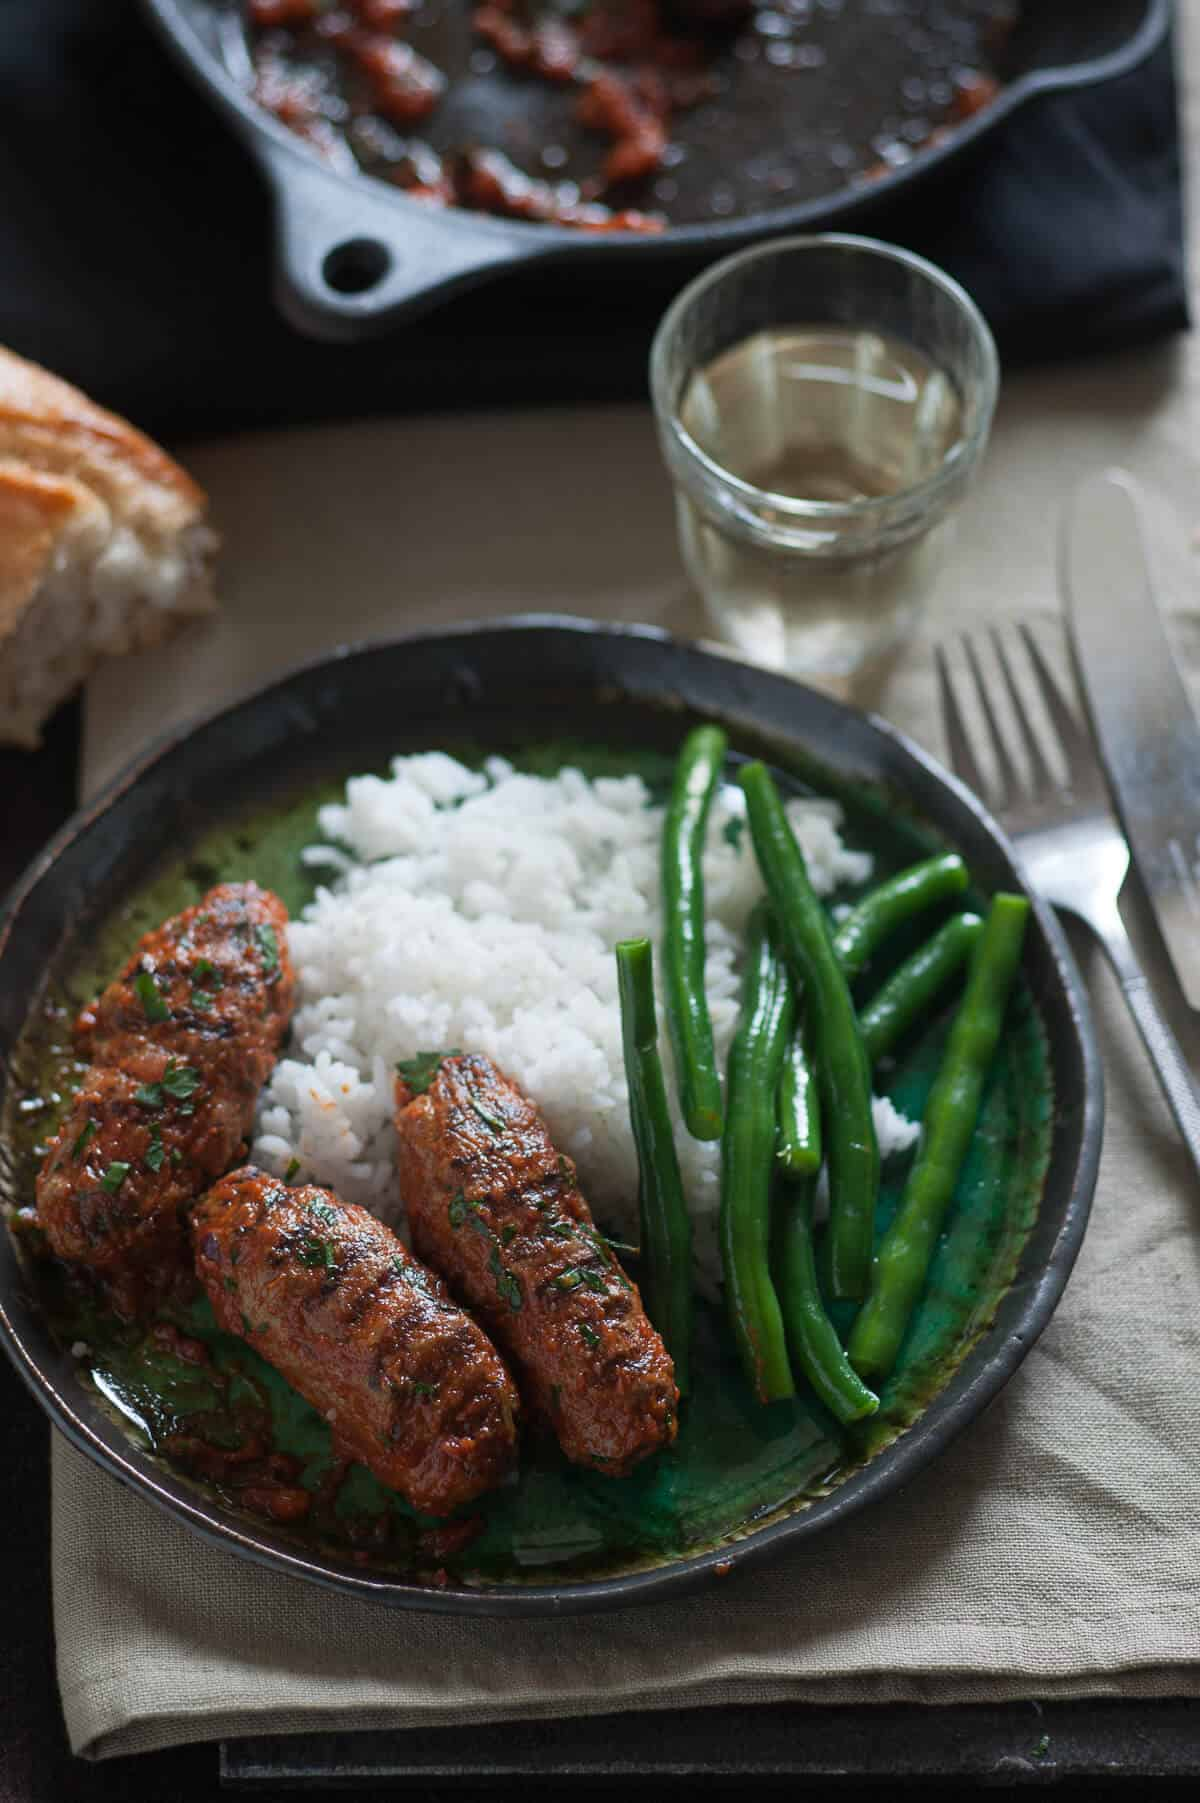 three oblong meatballs served on a plate with rice and green beans